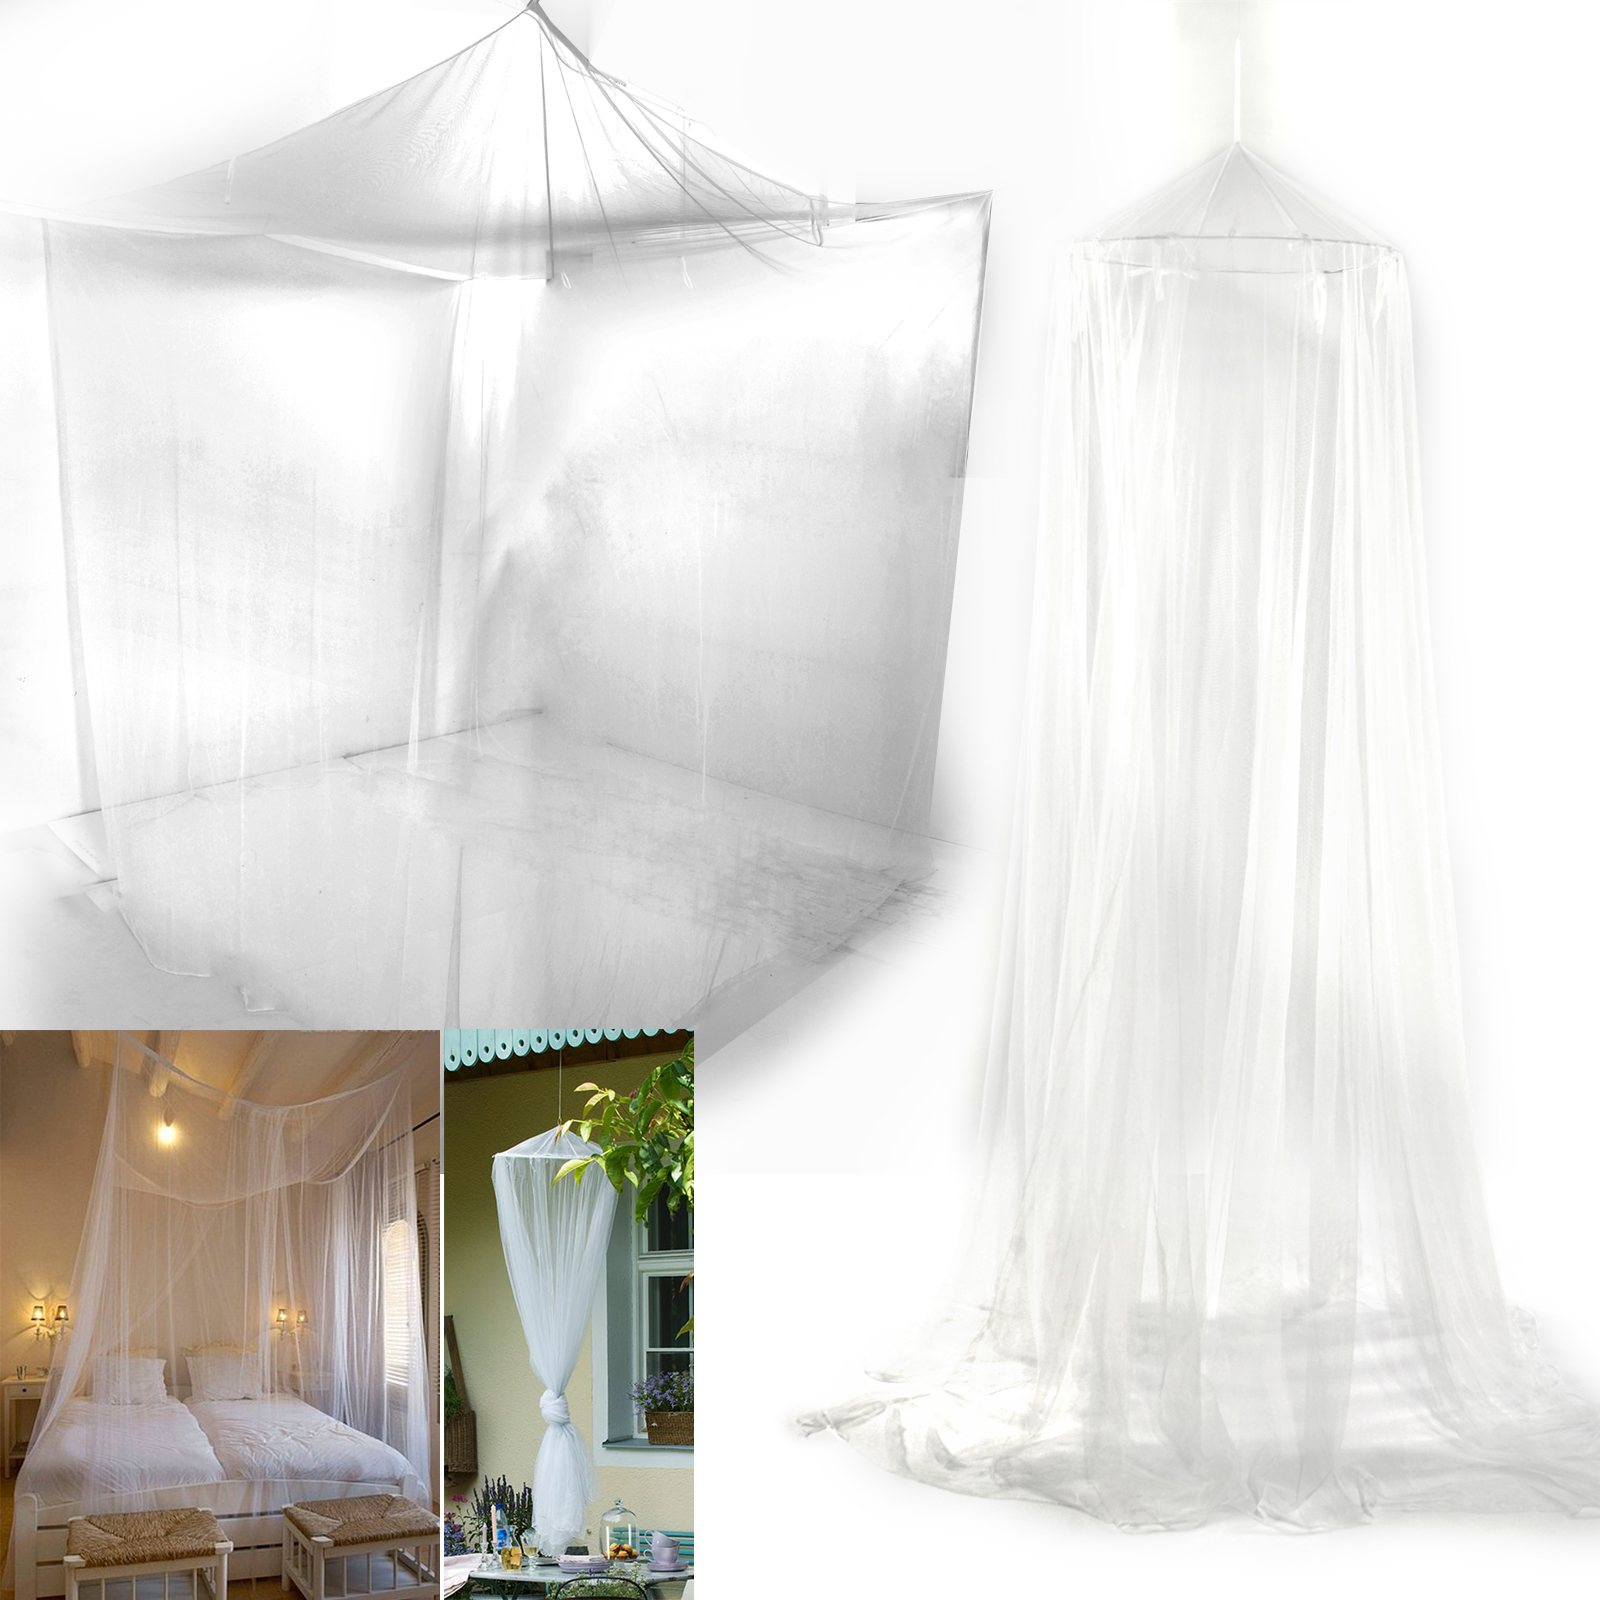 Mosquito Net Fly Insect Midges Protection King Bed Canopy Netting Curtain Uk